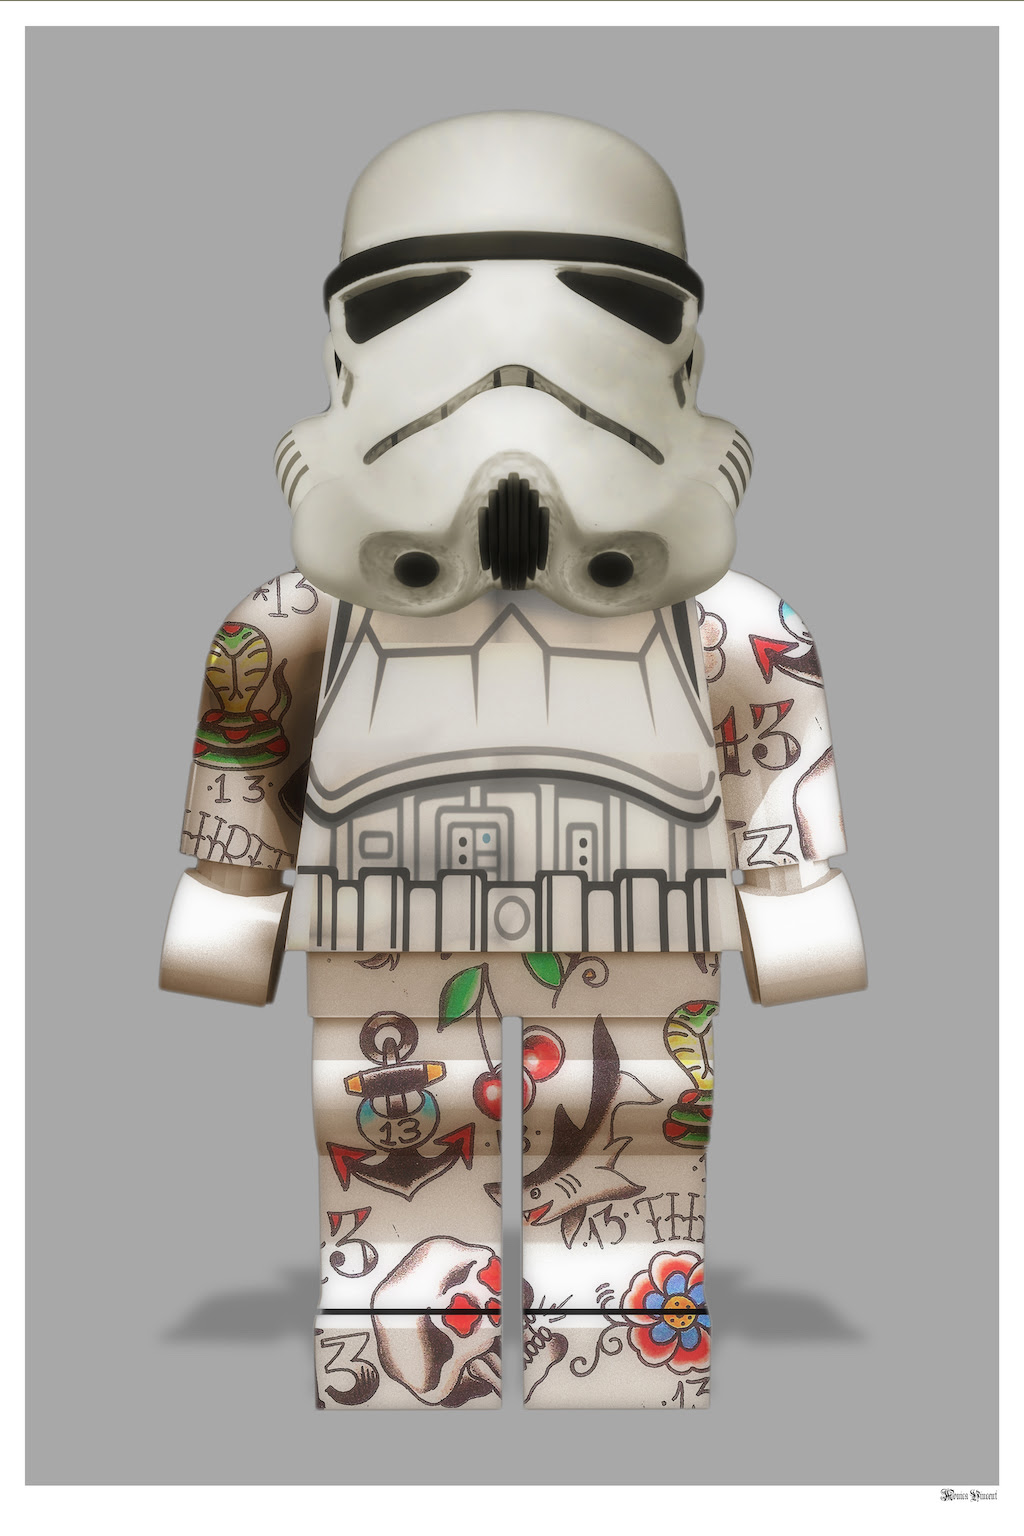 Lego Storm Trooper (Grey Background) - Large - Framed by Monica Vincent